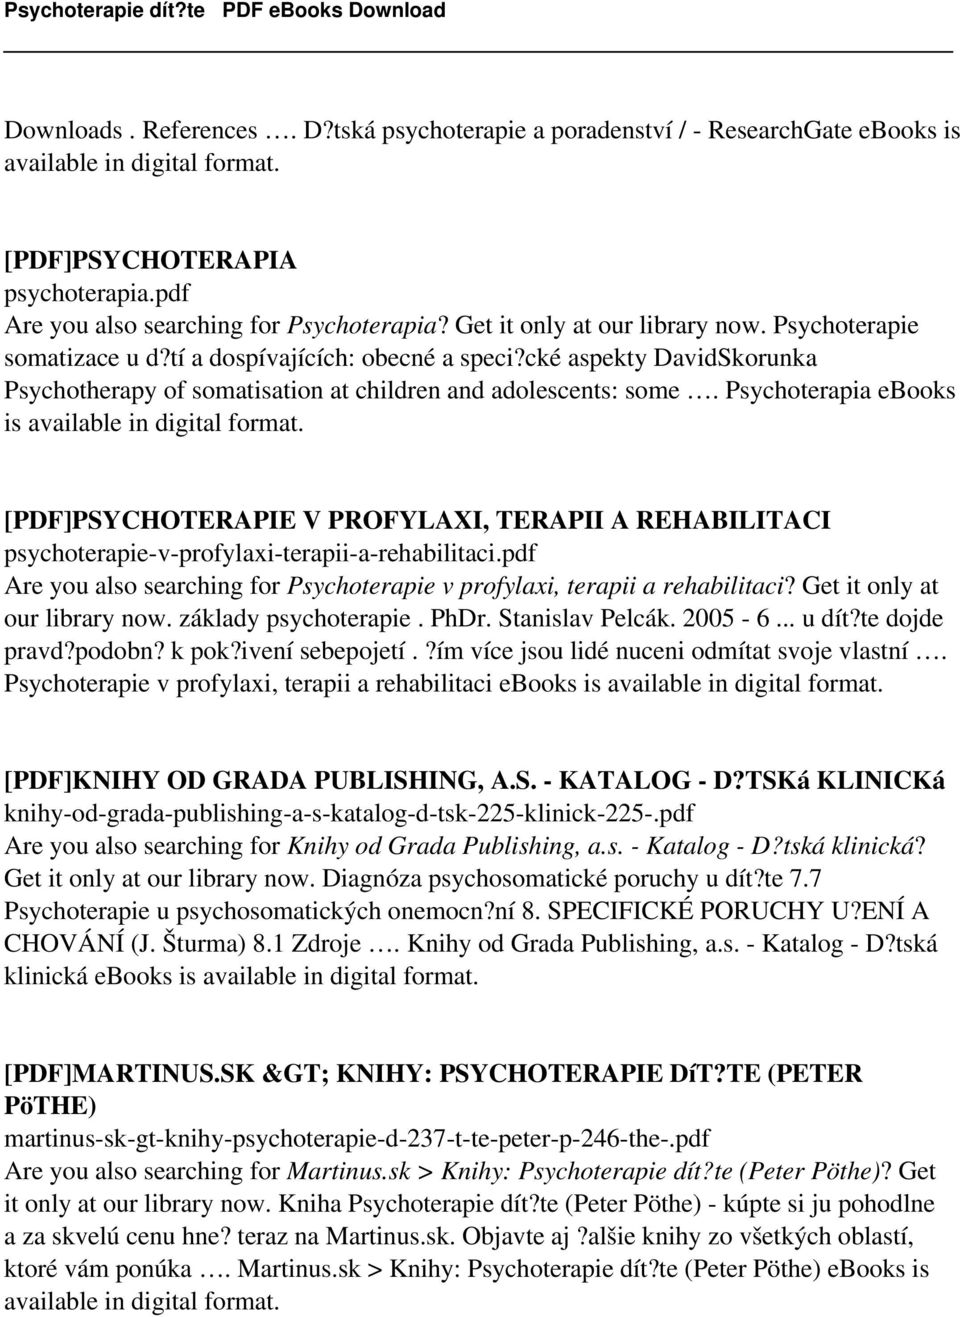 Psychoterapia ebooks is available in digital format. [PDF]PSYCHOTERAPIE V PROFYLAXI, TERAPII A REHABILITACI psychoterapie-v-profylaxi-terapii-a-rehabilitaci.